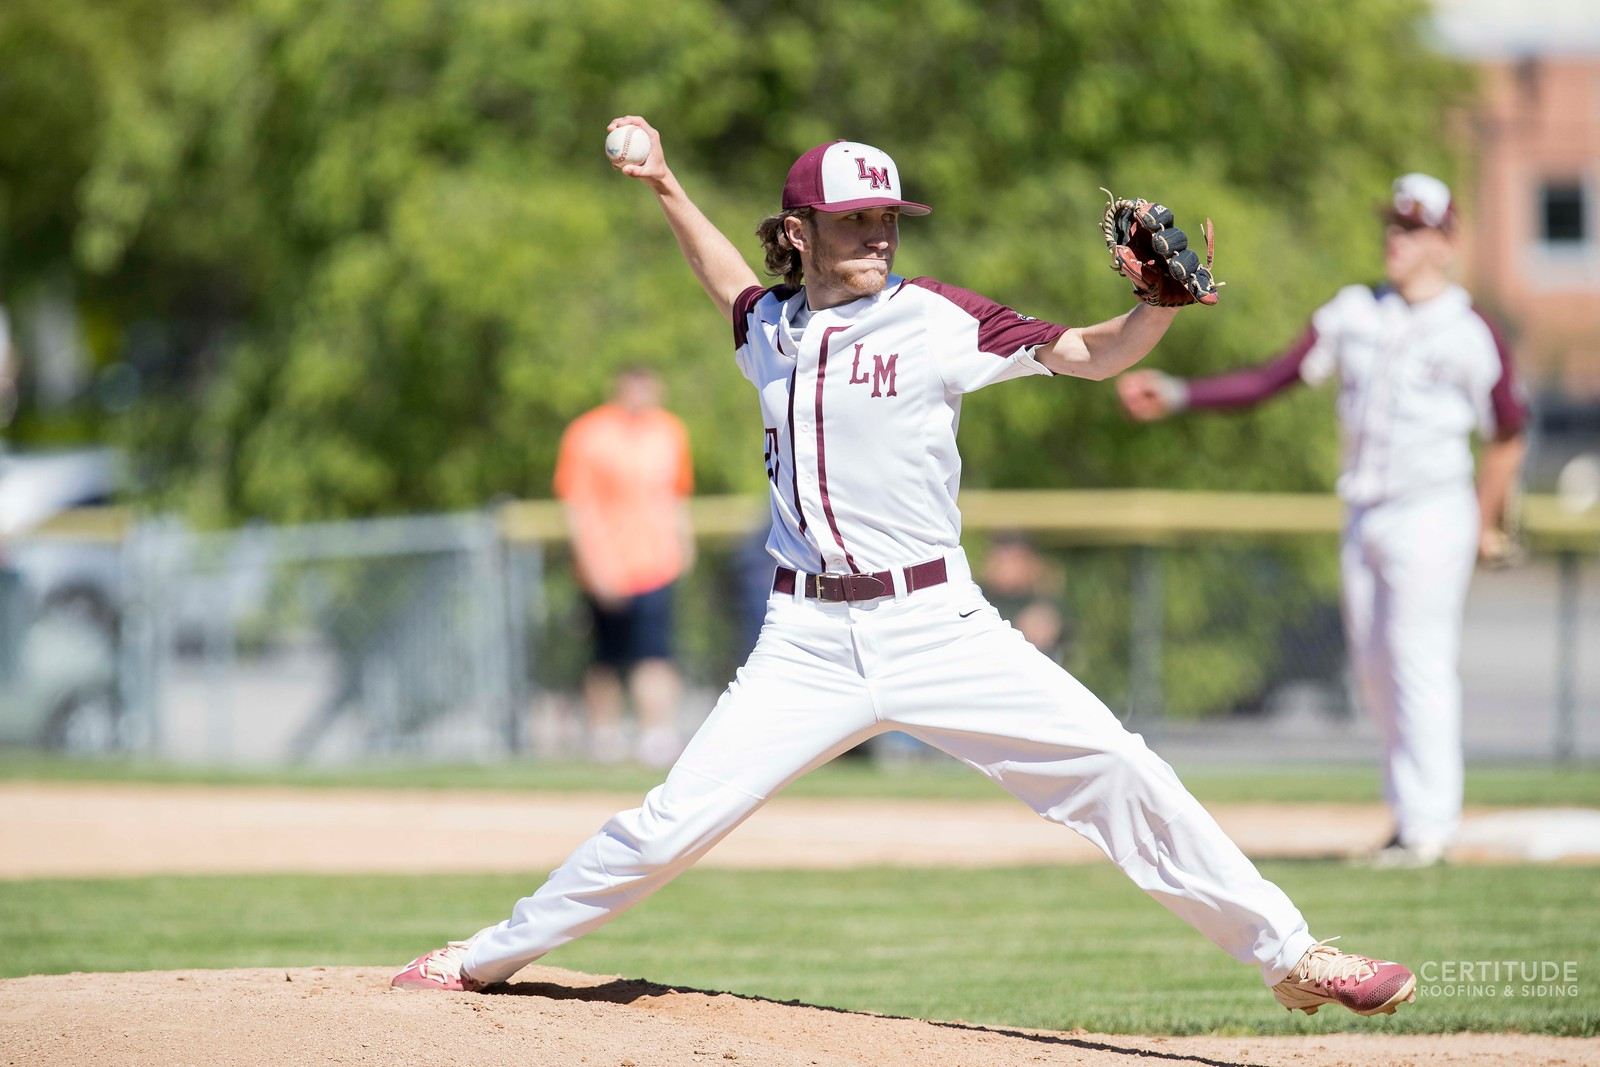 Lower_Merion_BASEBALL_vs_Conestoga-91